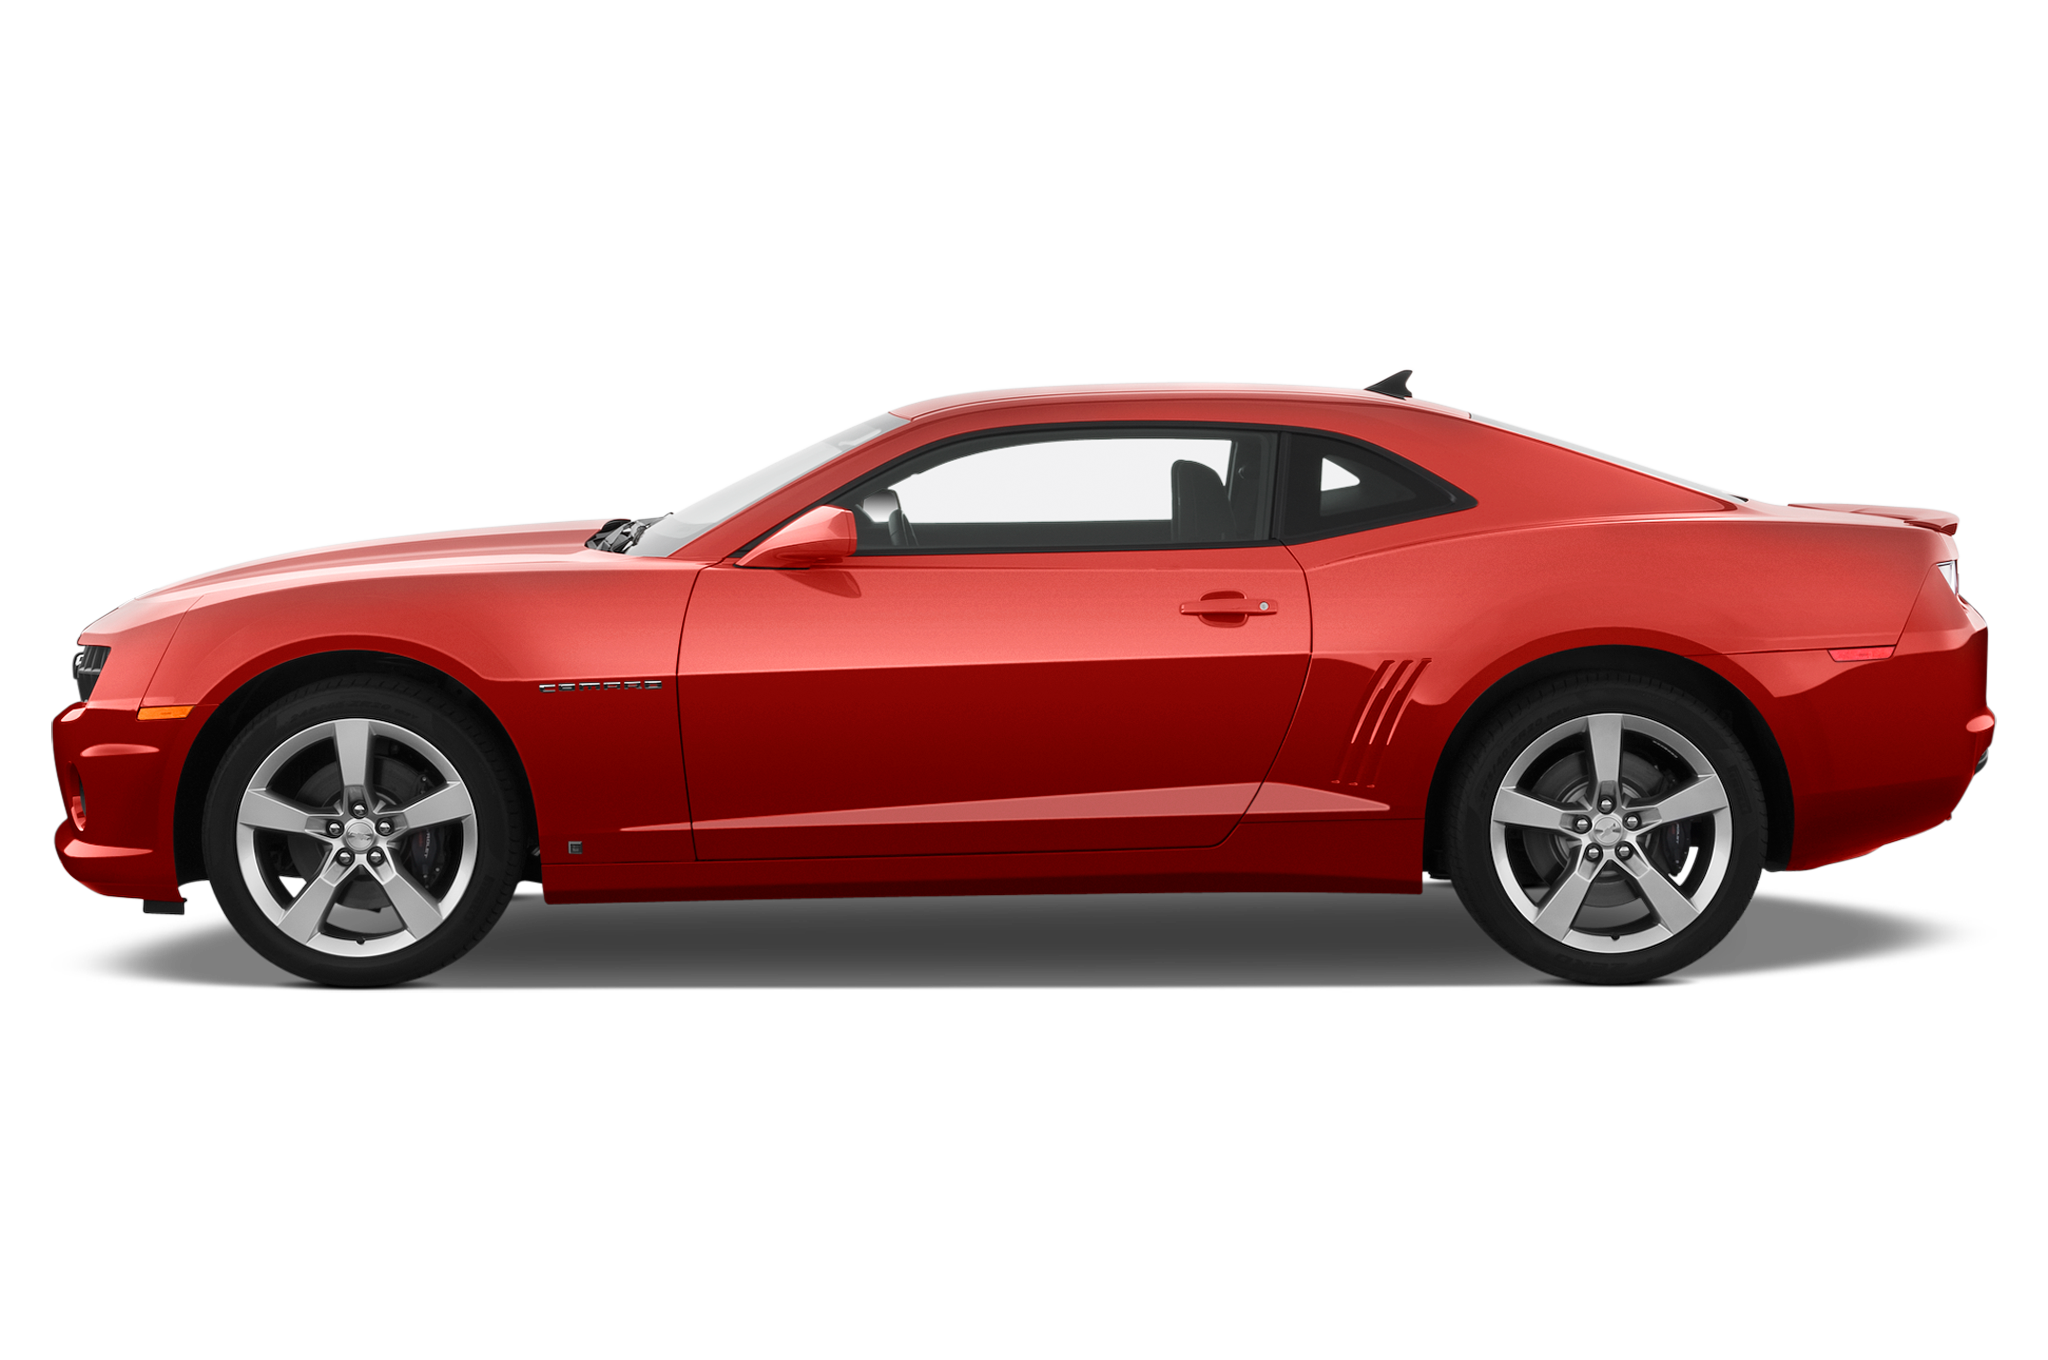 2010 Chevy Camaro SS - Chevrolet Sport Coupe Review ...